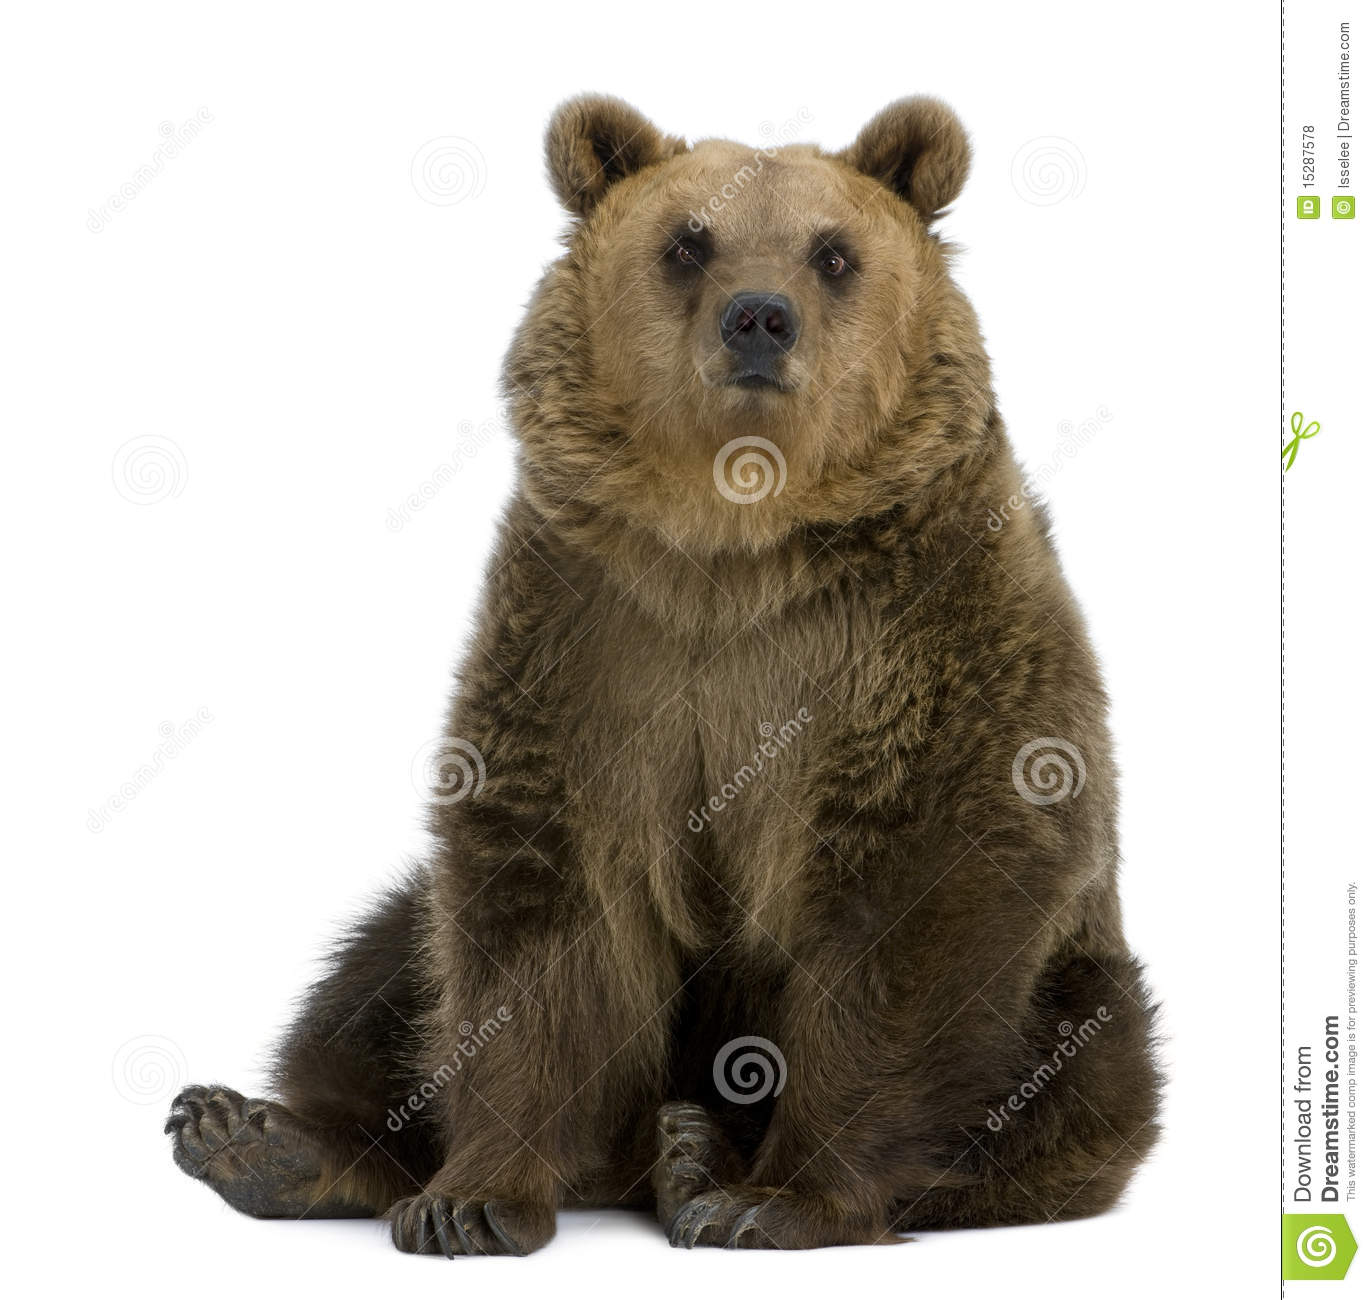 Brown Bear 8 Years Old Sitting Royalty Free Stock Photos